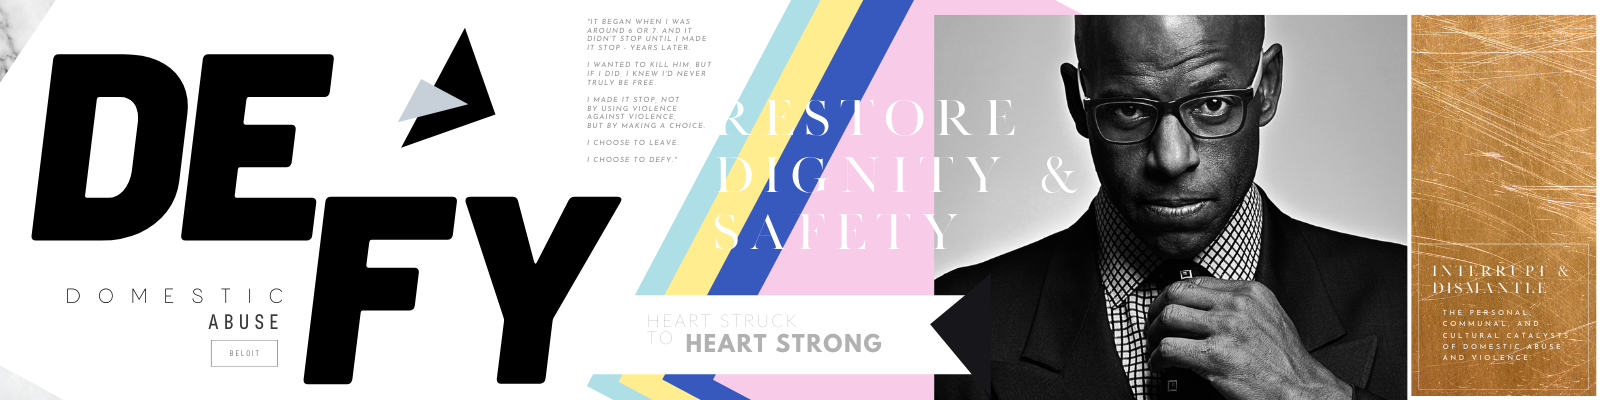 Brand stylescape created by Owl Street Studio for Defy Domestic Abuse Beloit